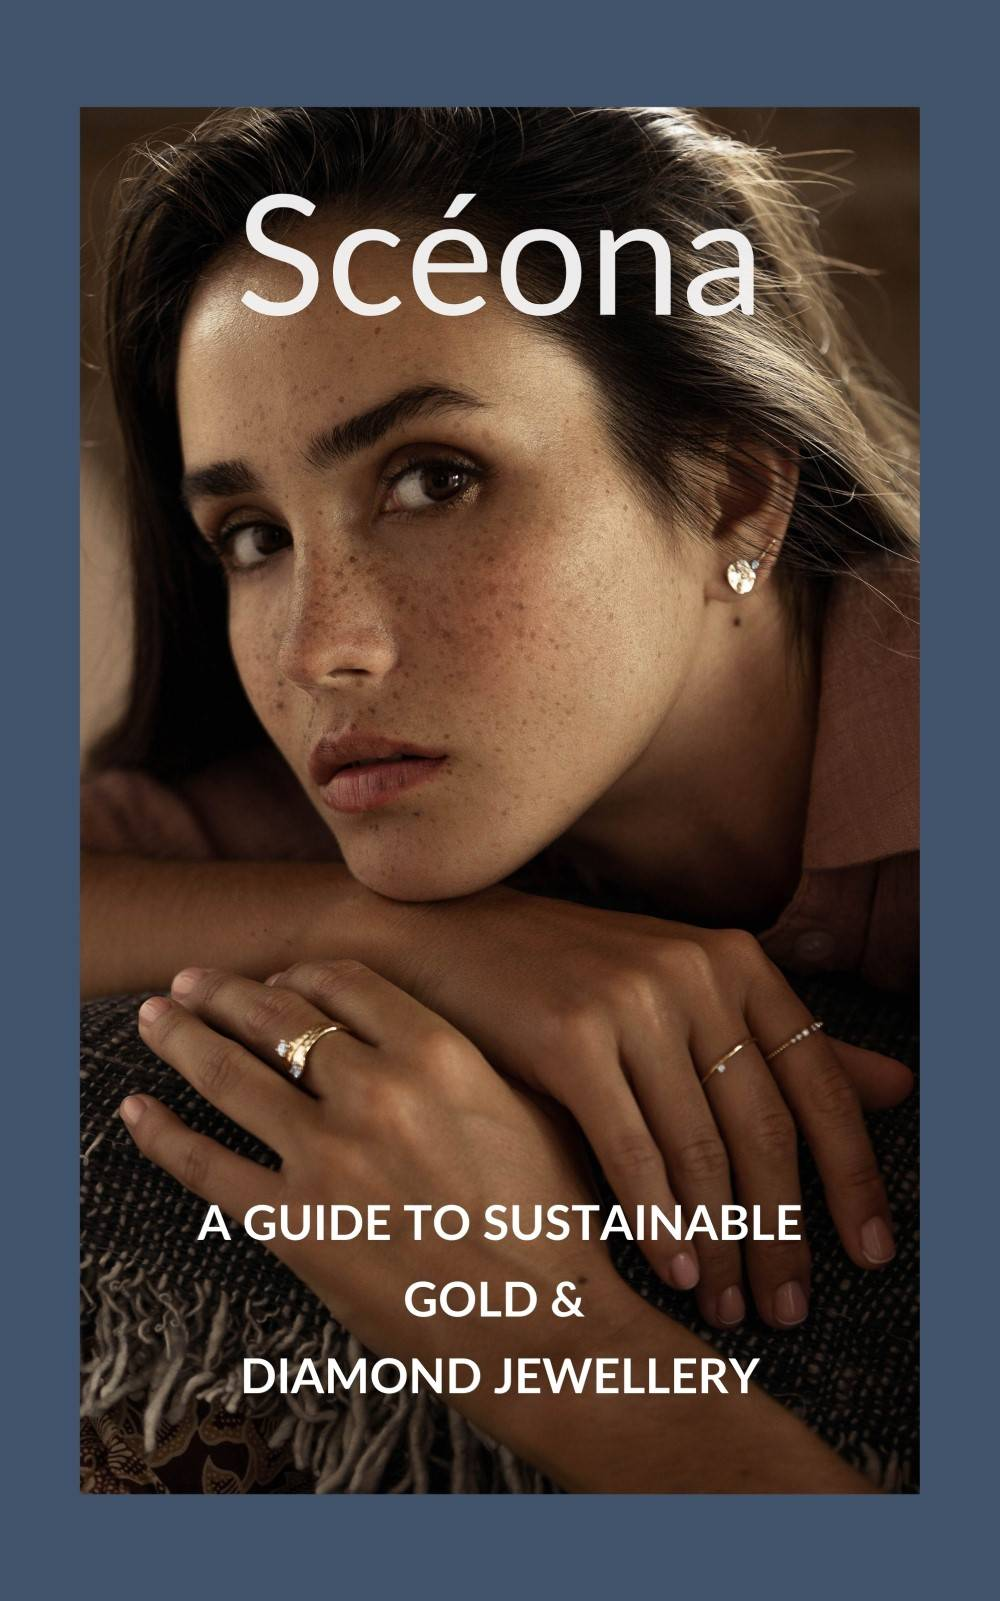 The cover of Sceona free ebook showing a woman wearing gold earrings and gold rings